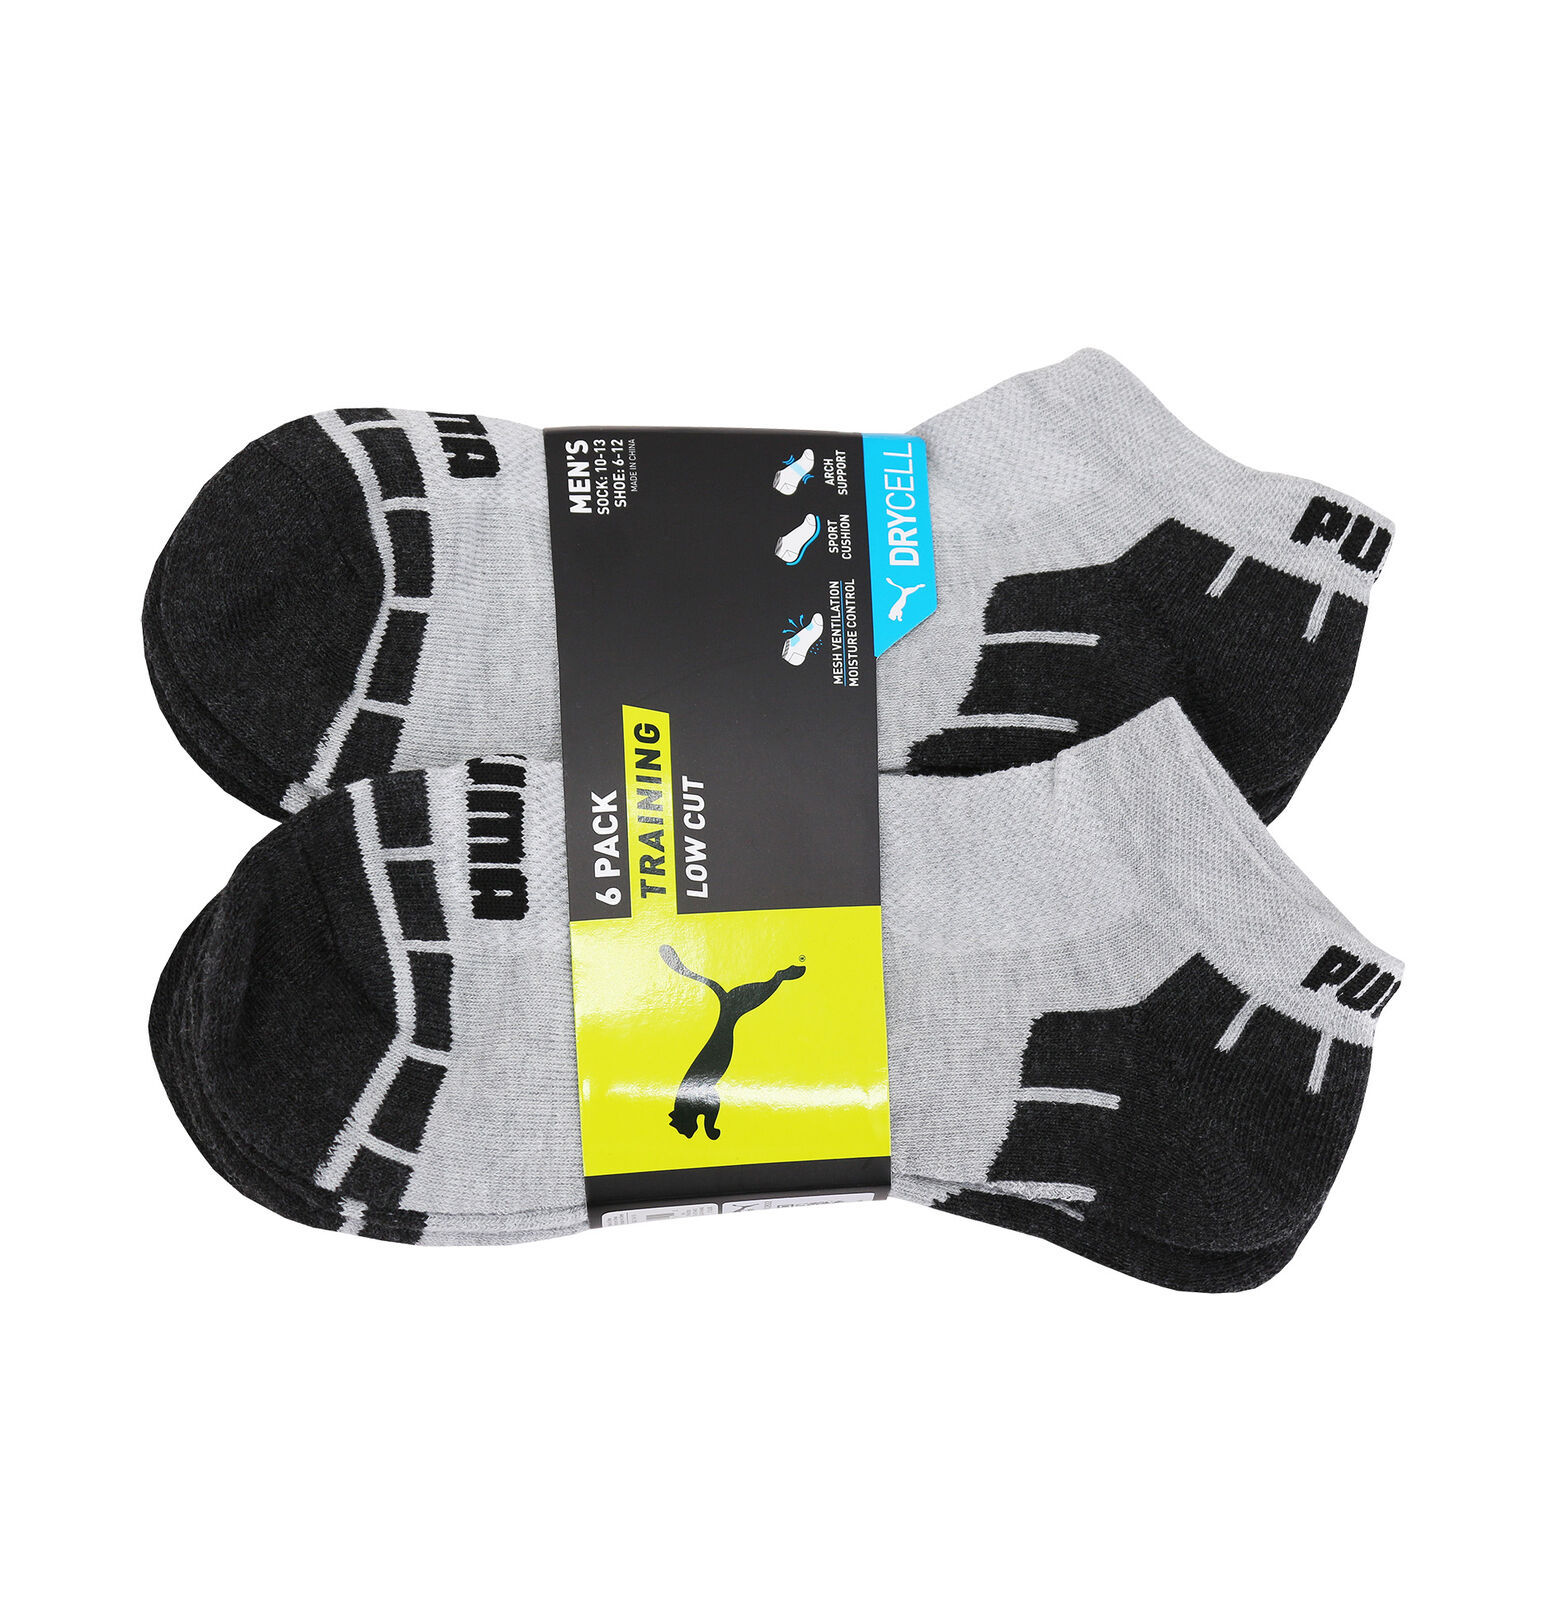 Puma Men's 6 Pack Athletic Gym Low Cut Moisture Control Cushioned Gray Socks